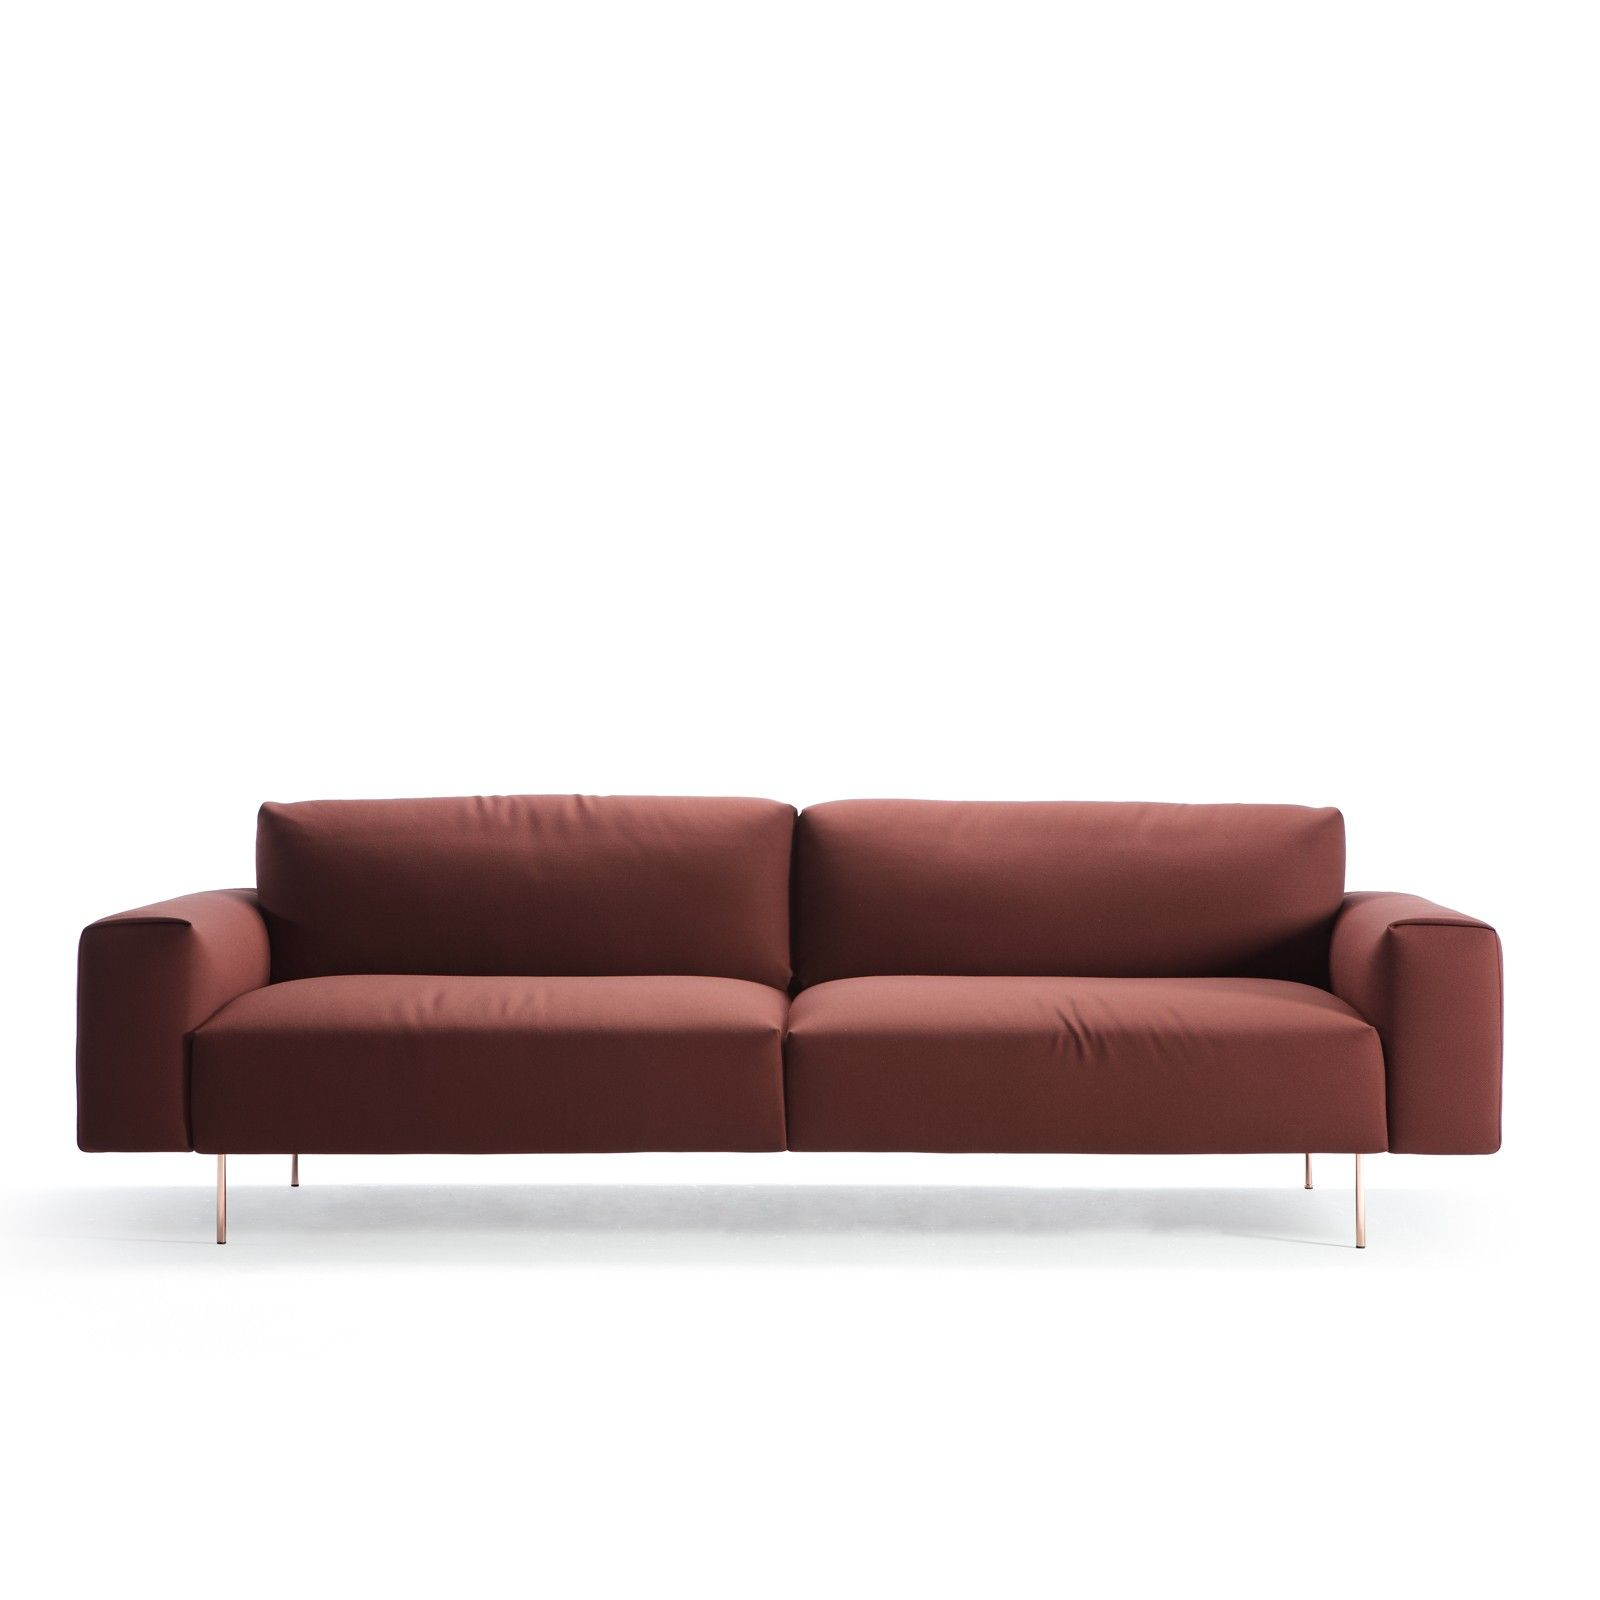 Sofa - KE-ZU Furniture | residential and contract ...